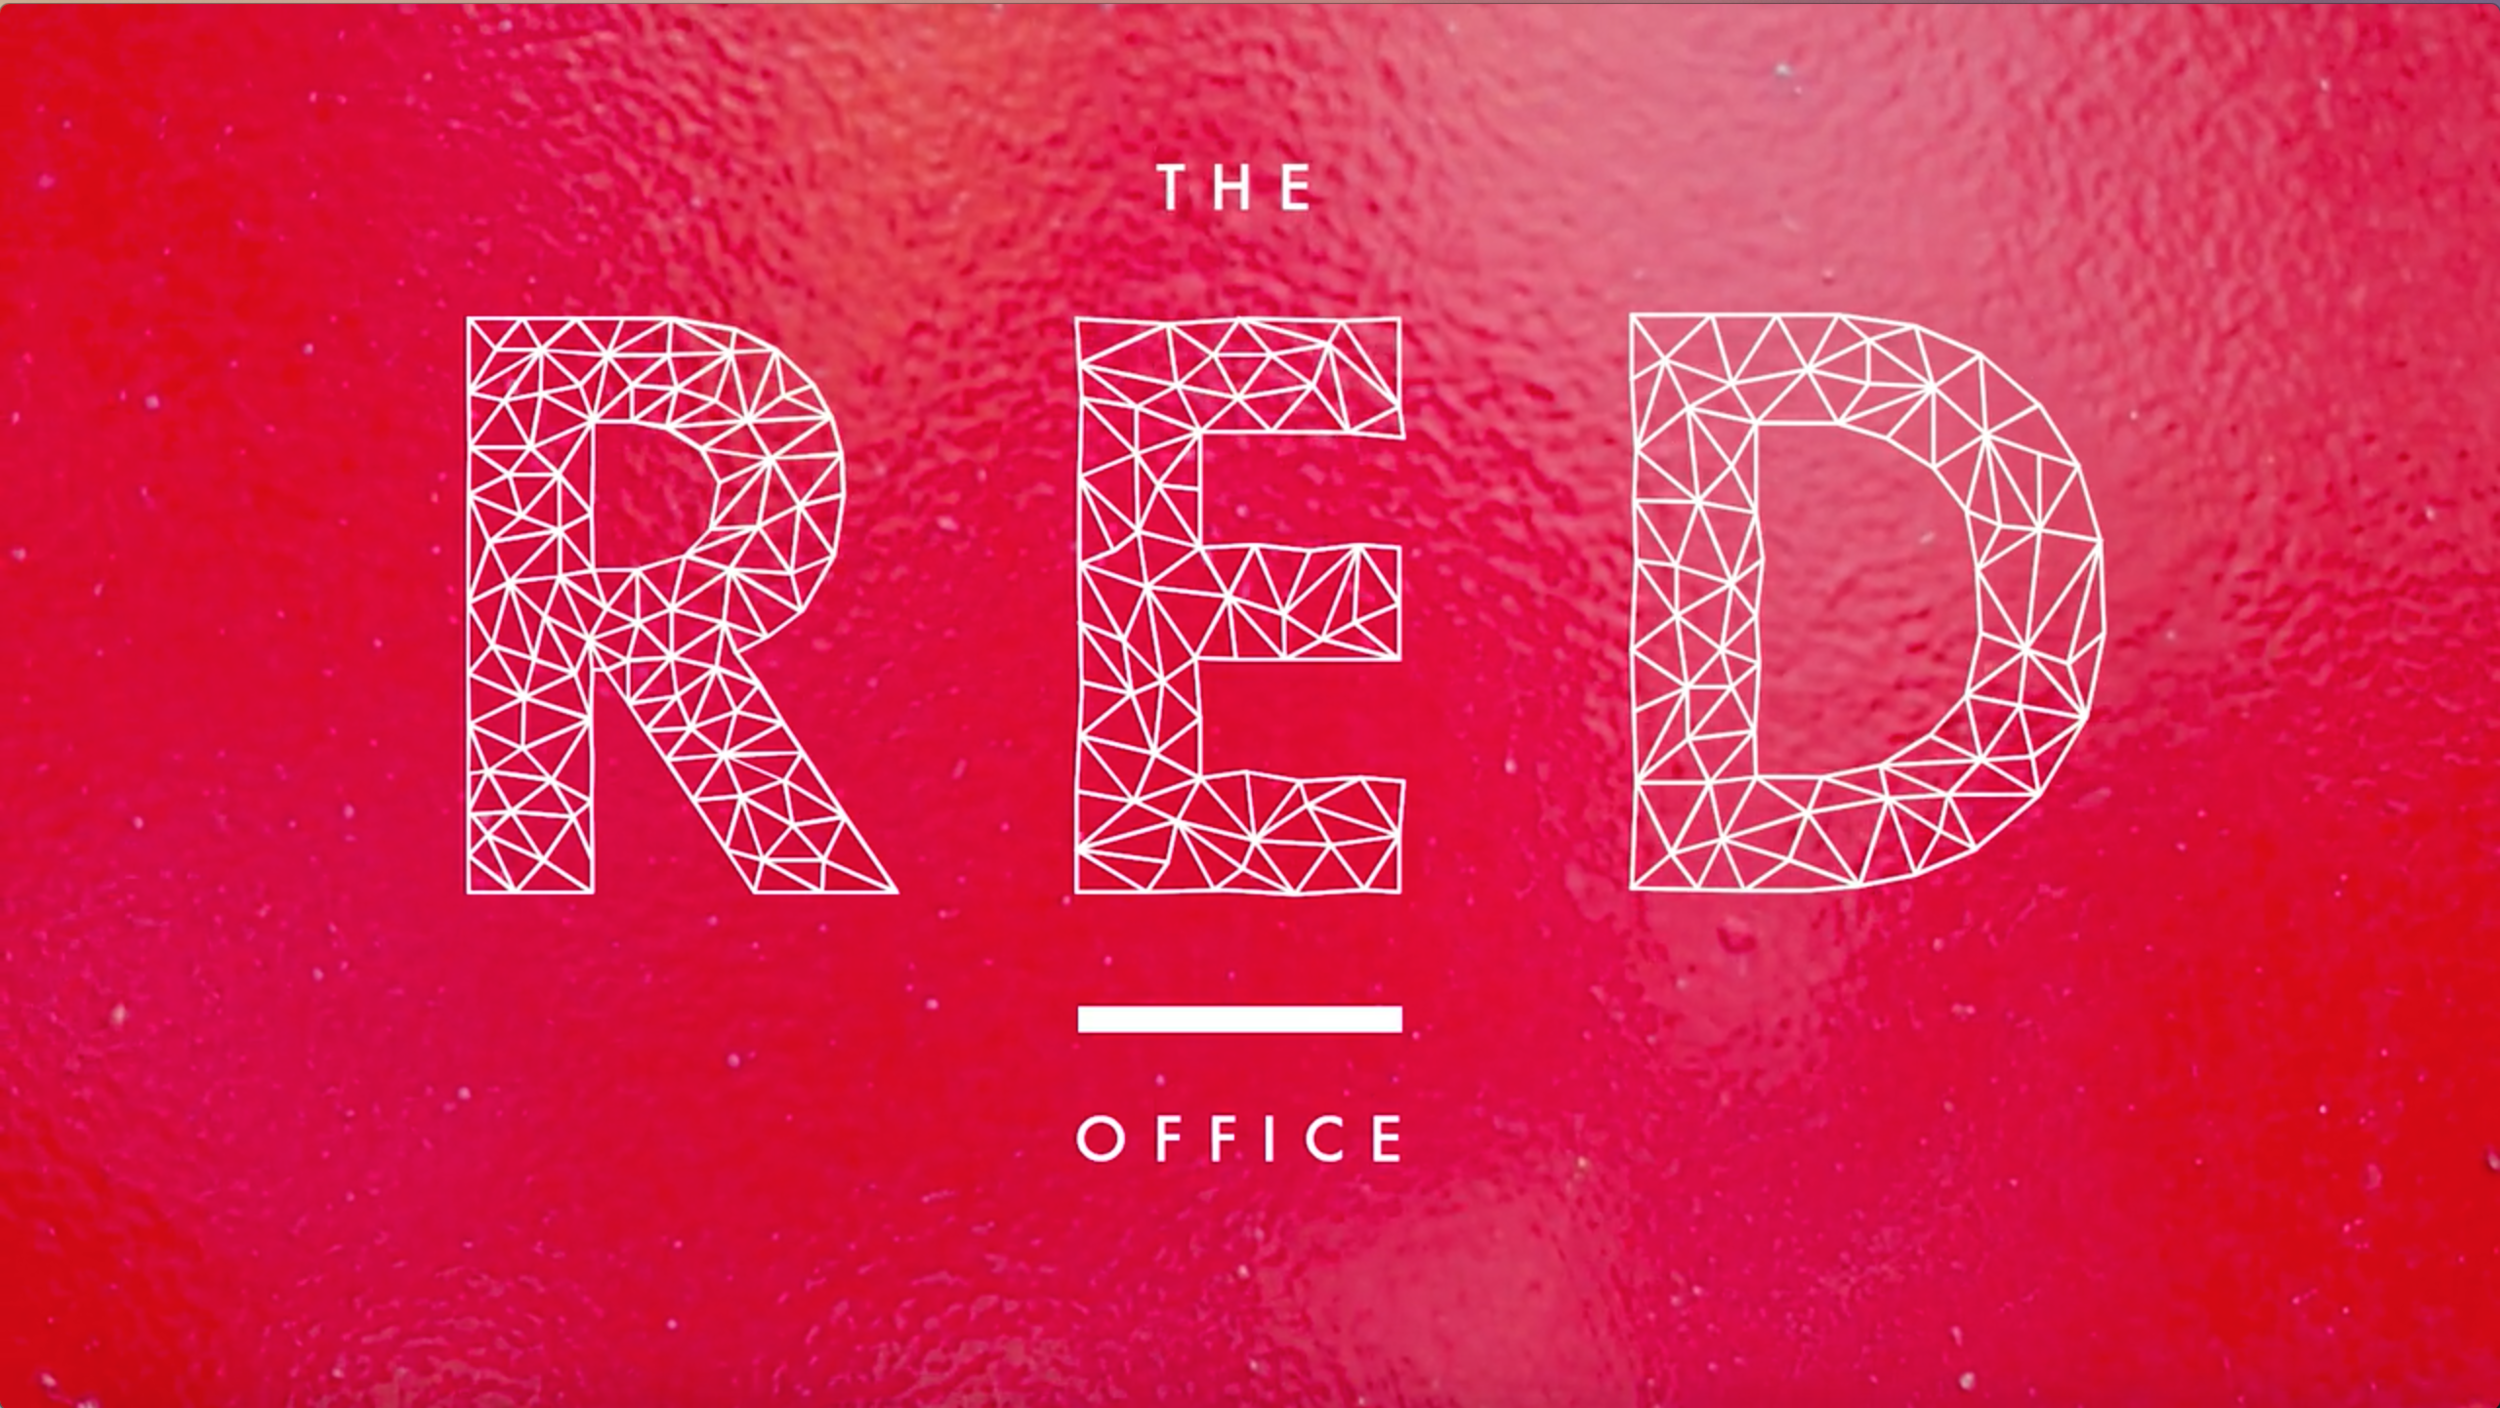 The RED Office